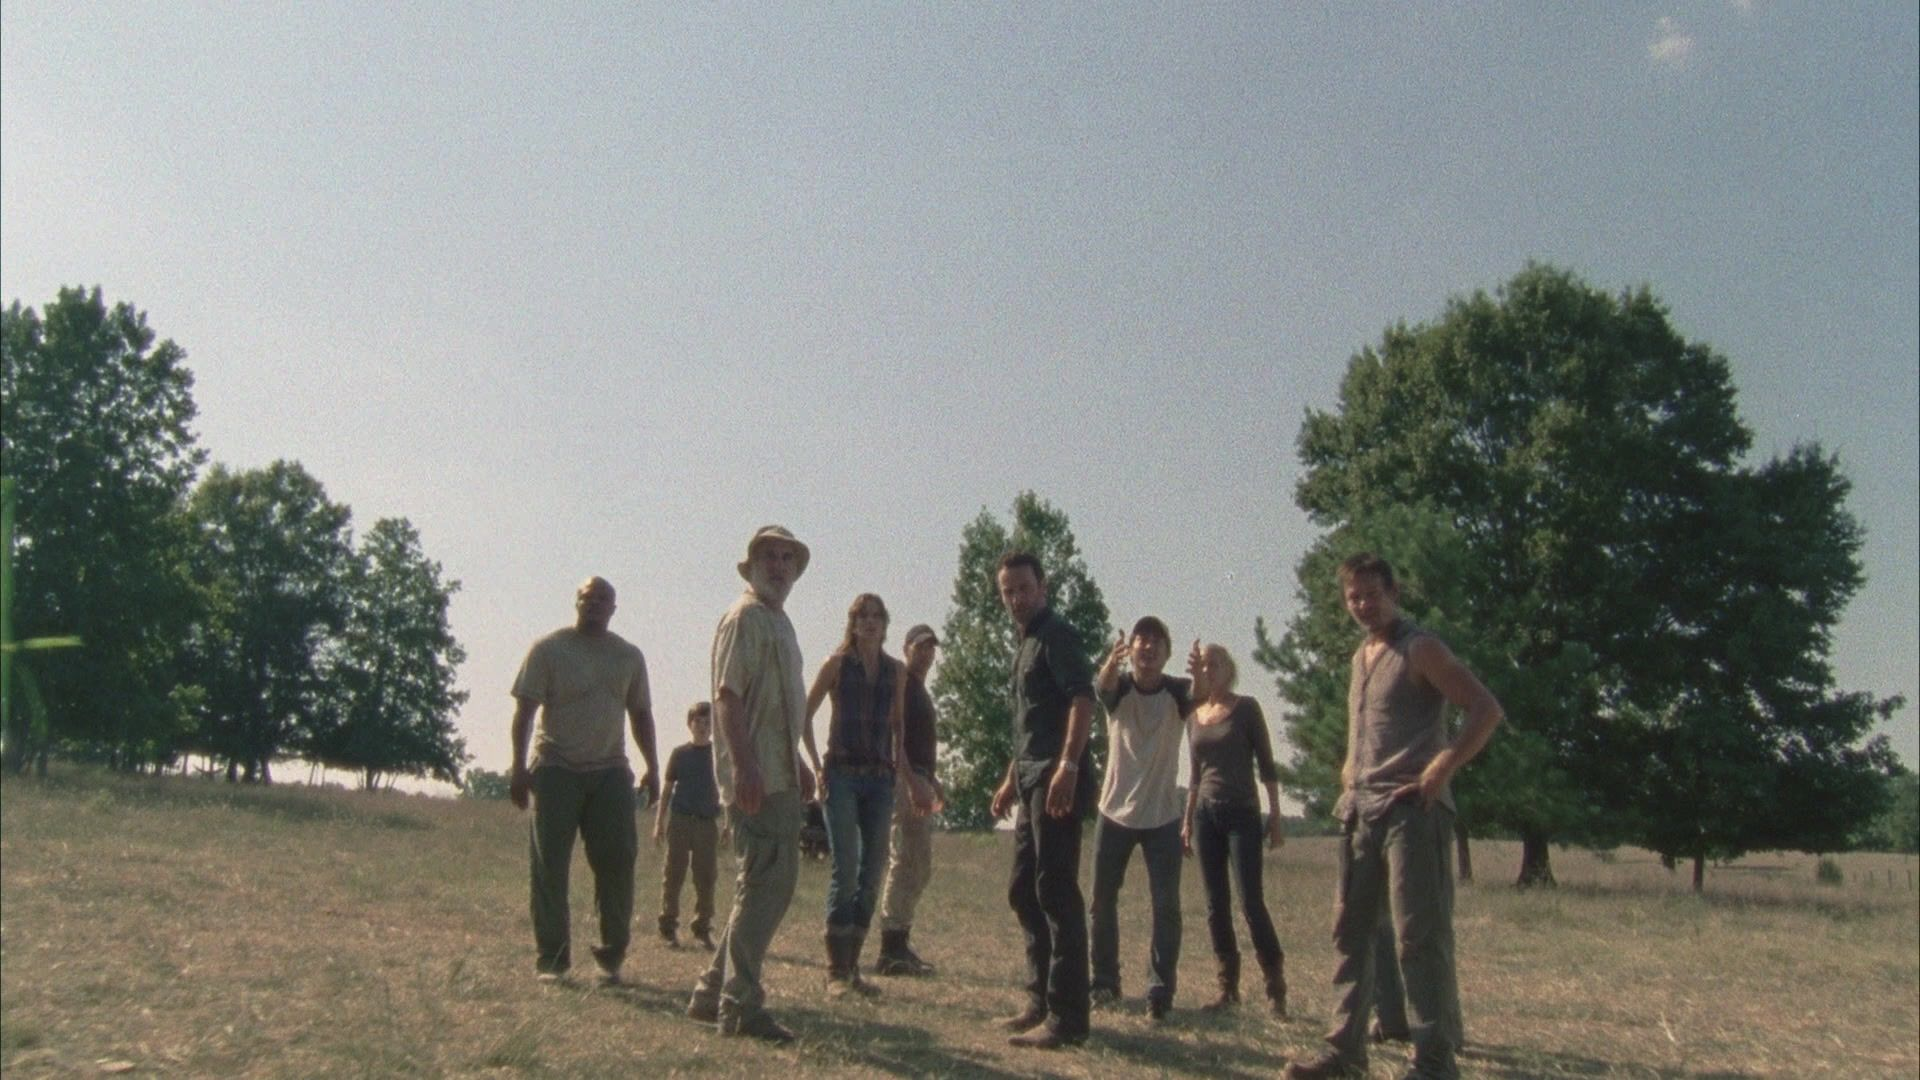 Hershel sets a deadline. All secrets are out in the open. Glenn stands up for himself and Shane takes charge.